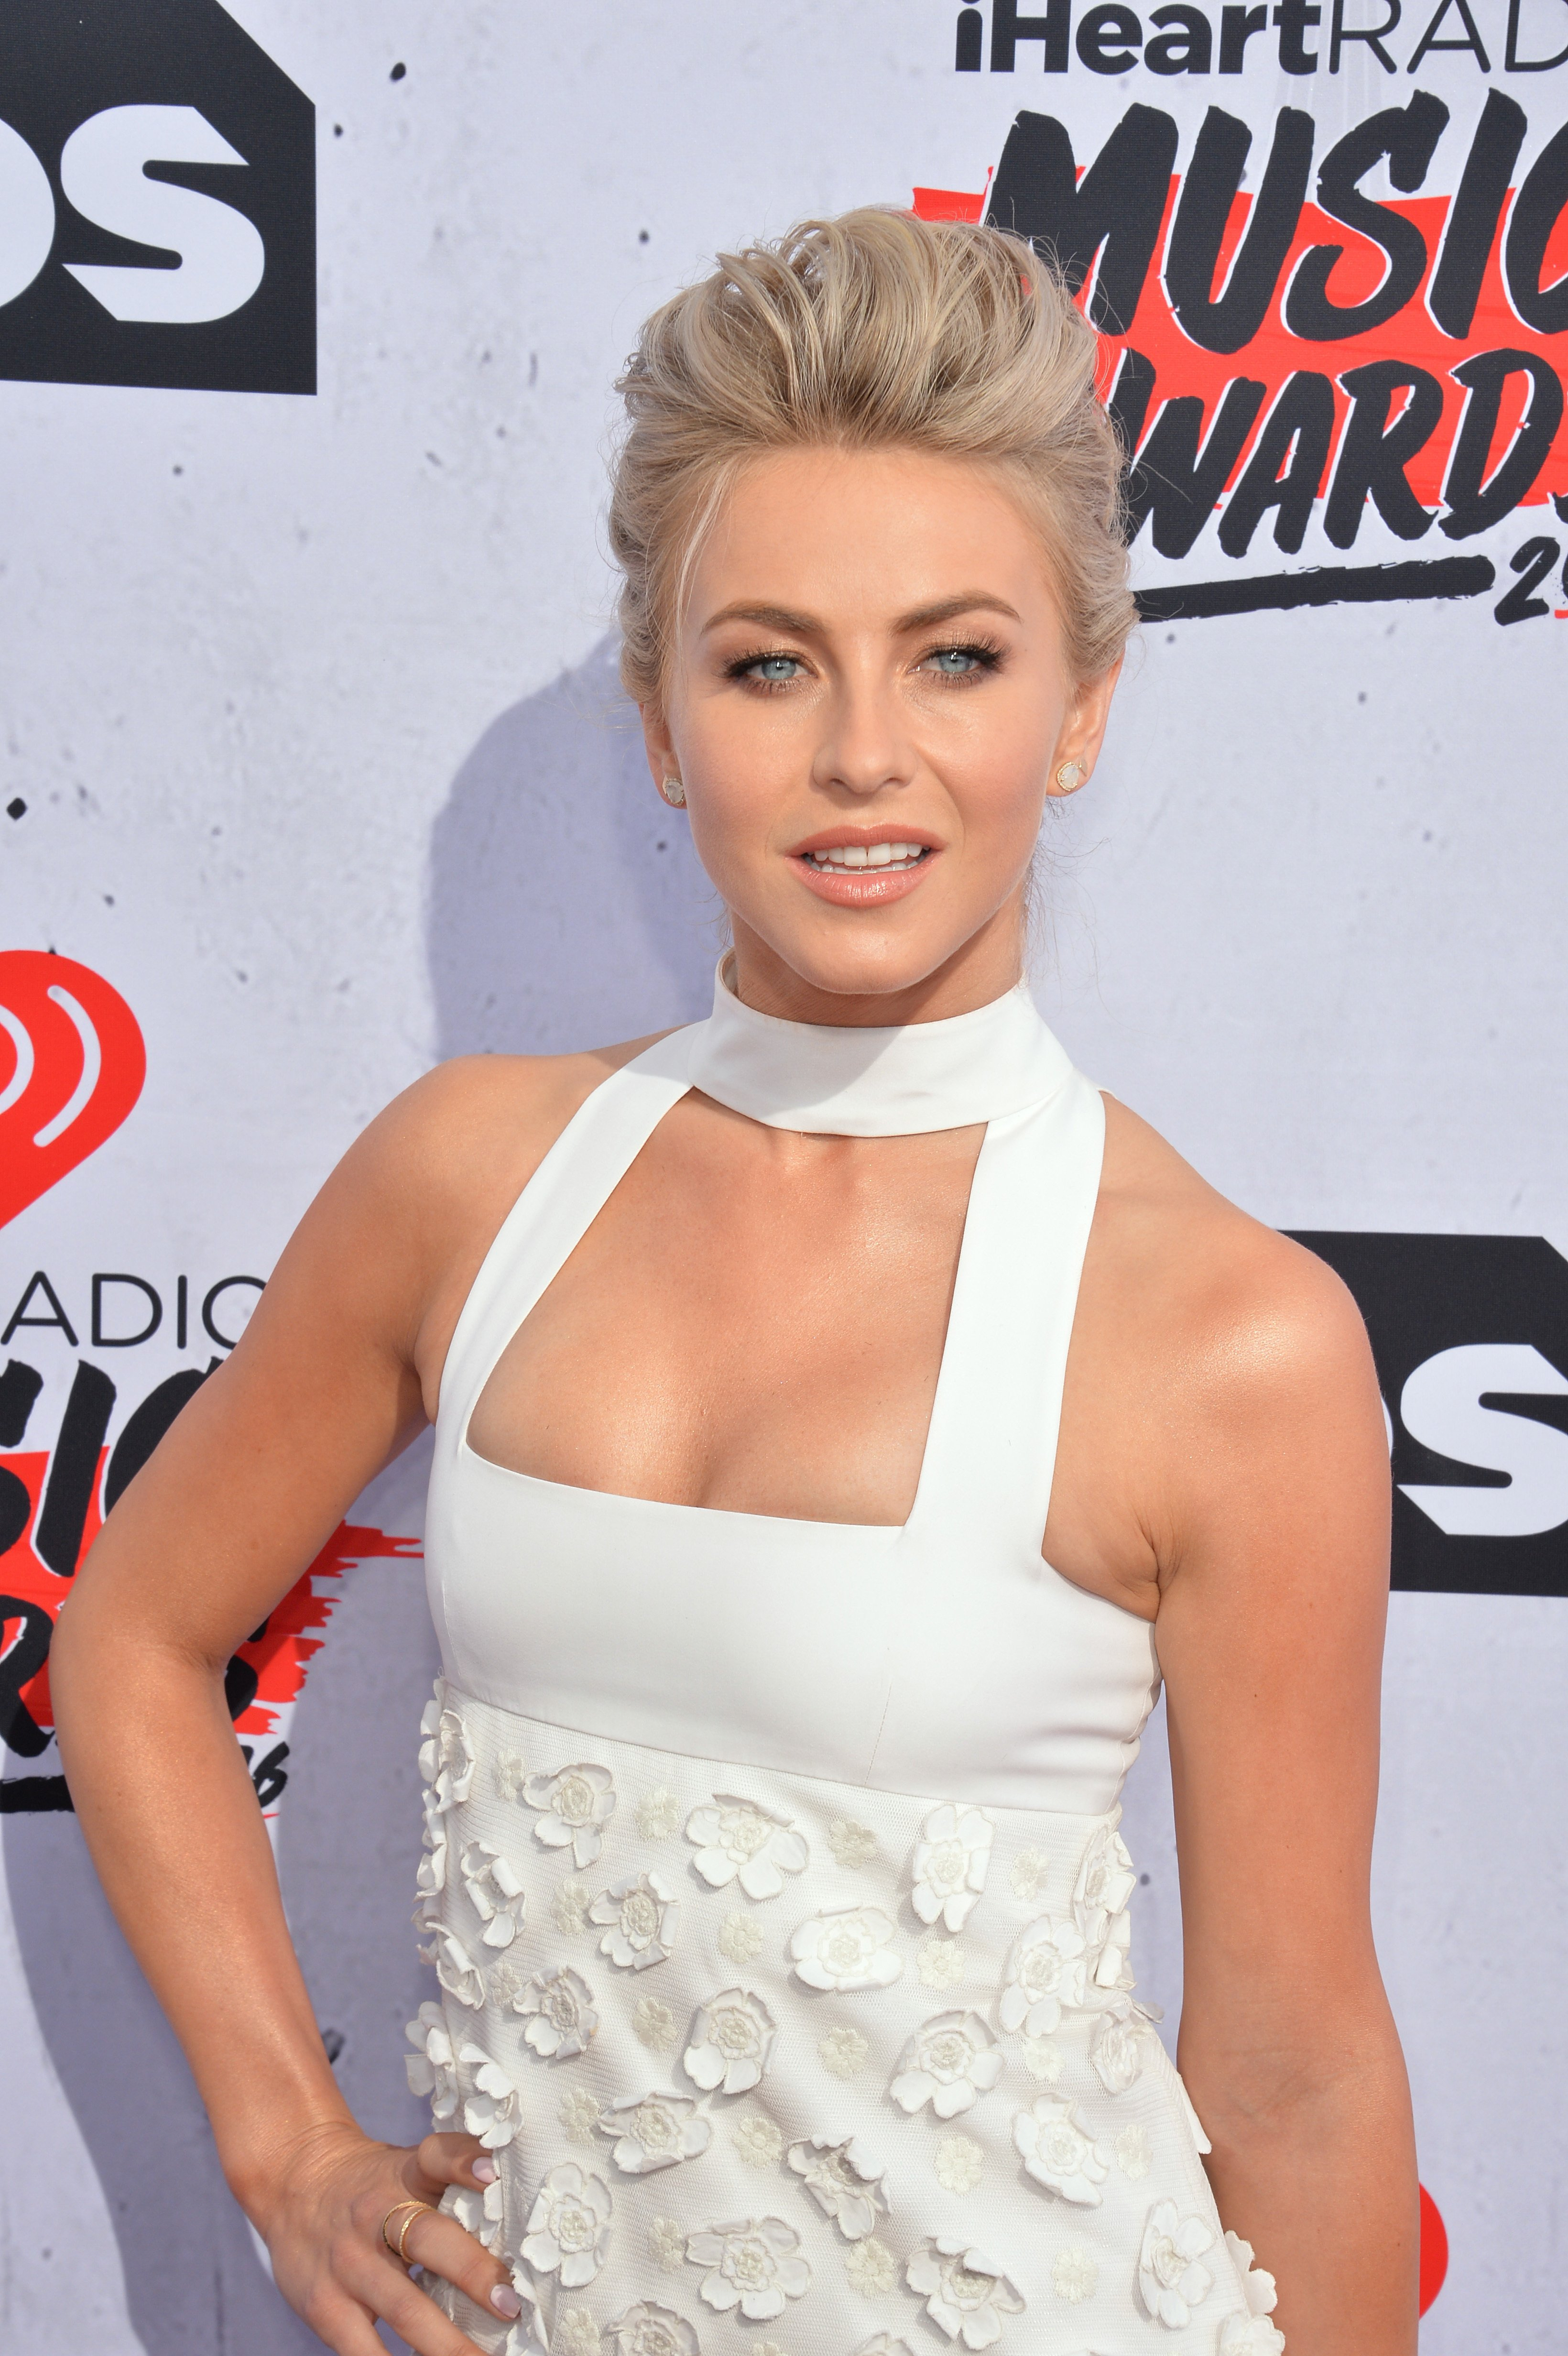 Julianne Hough at the iHeartRadio Music Awards 2016., April 3, 2016. | Photo: Shutterstock